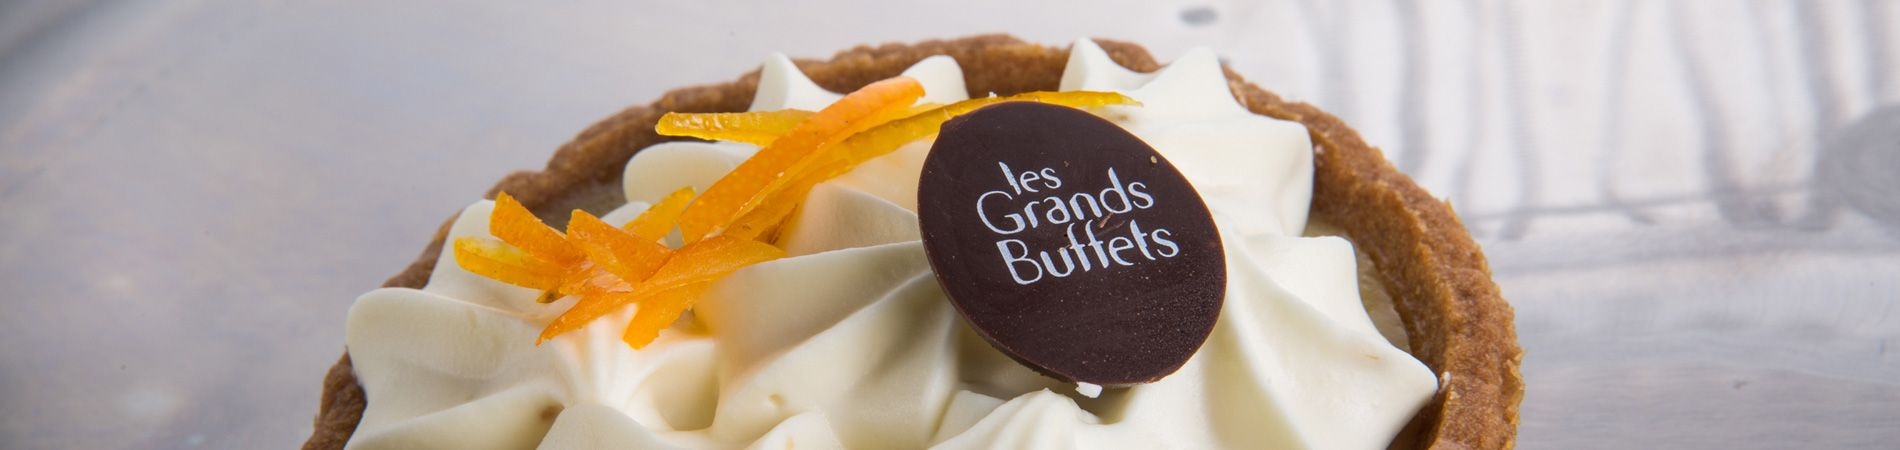 Postres a voluntad de los Grands Buffets